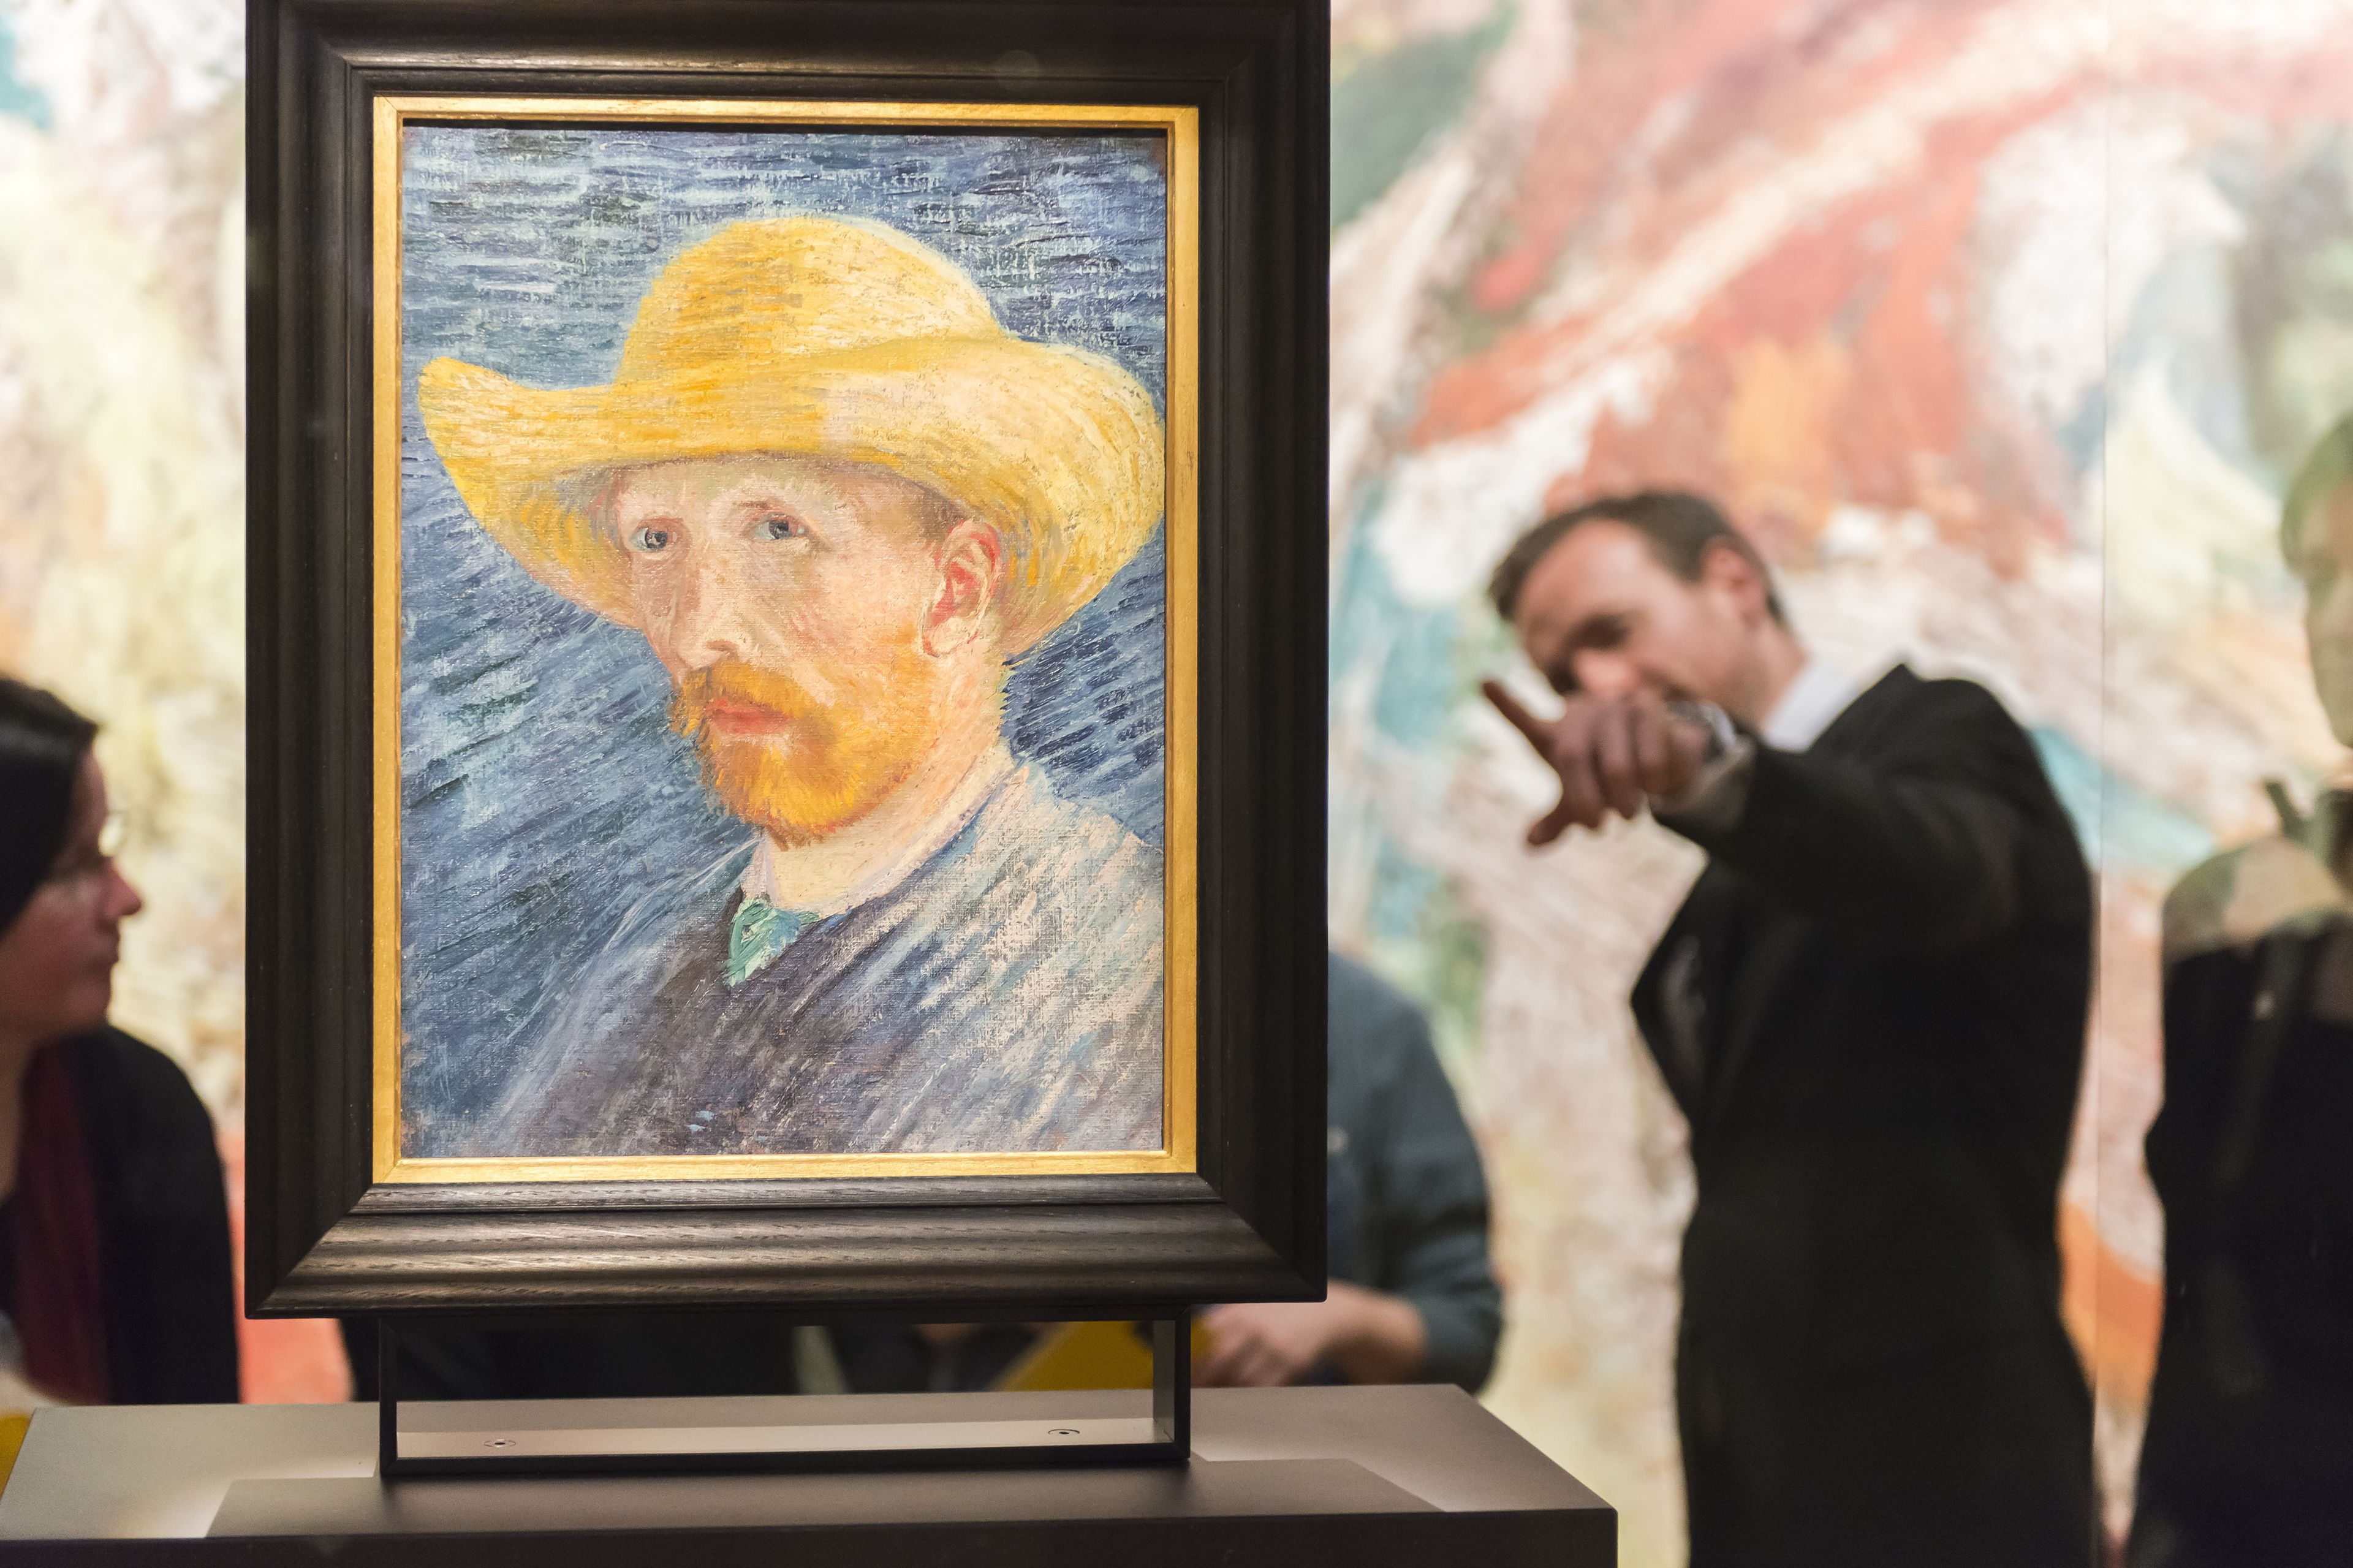 Skip-the-Line Van Gogh Museum Admission Ticket & Canal Cruise